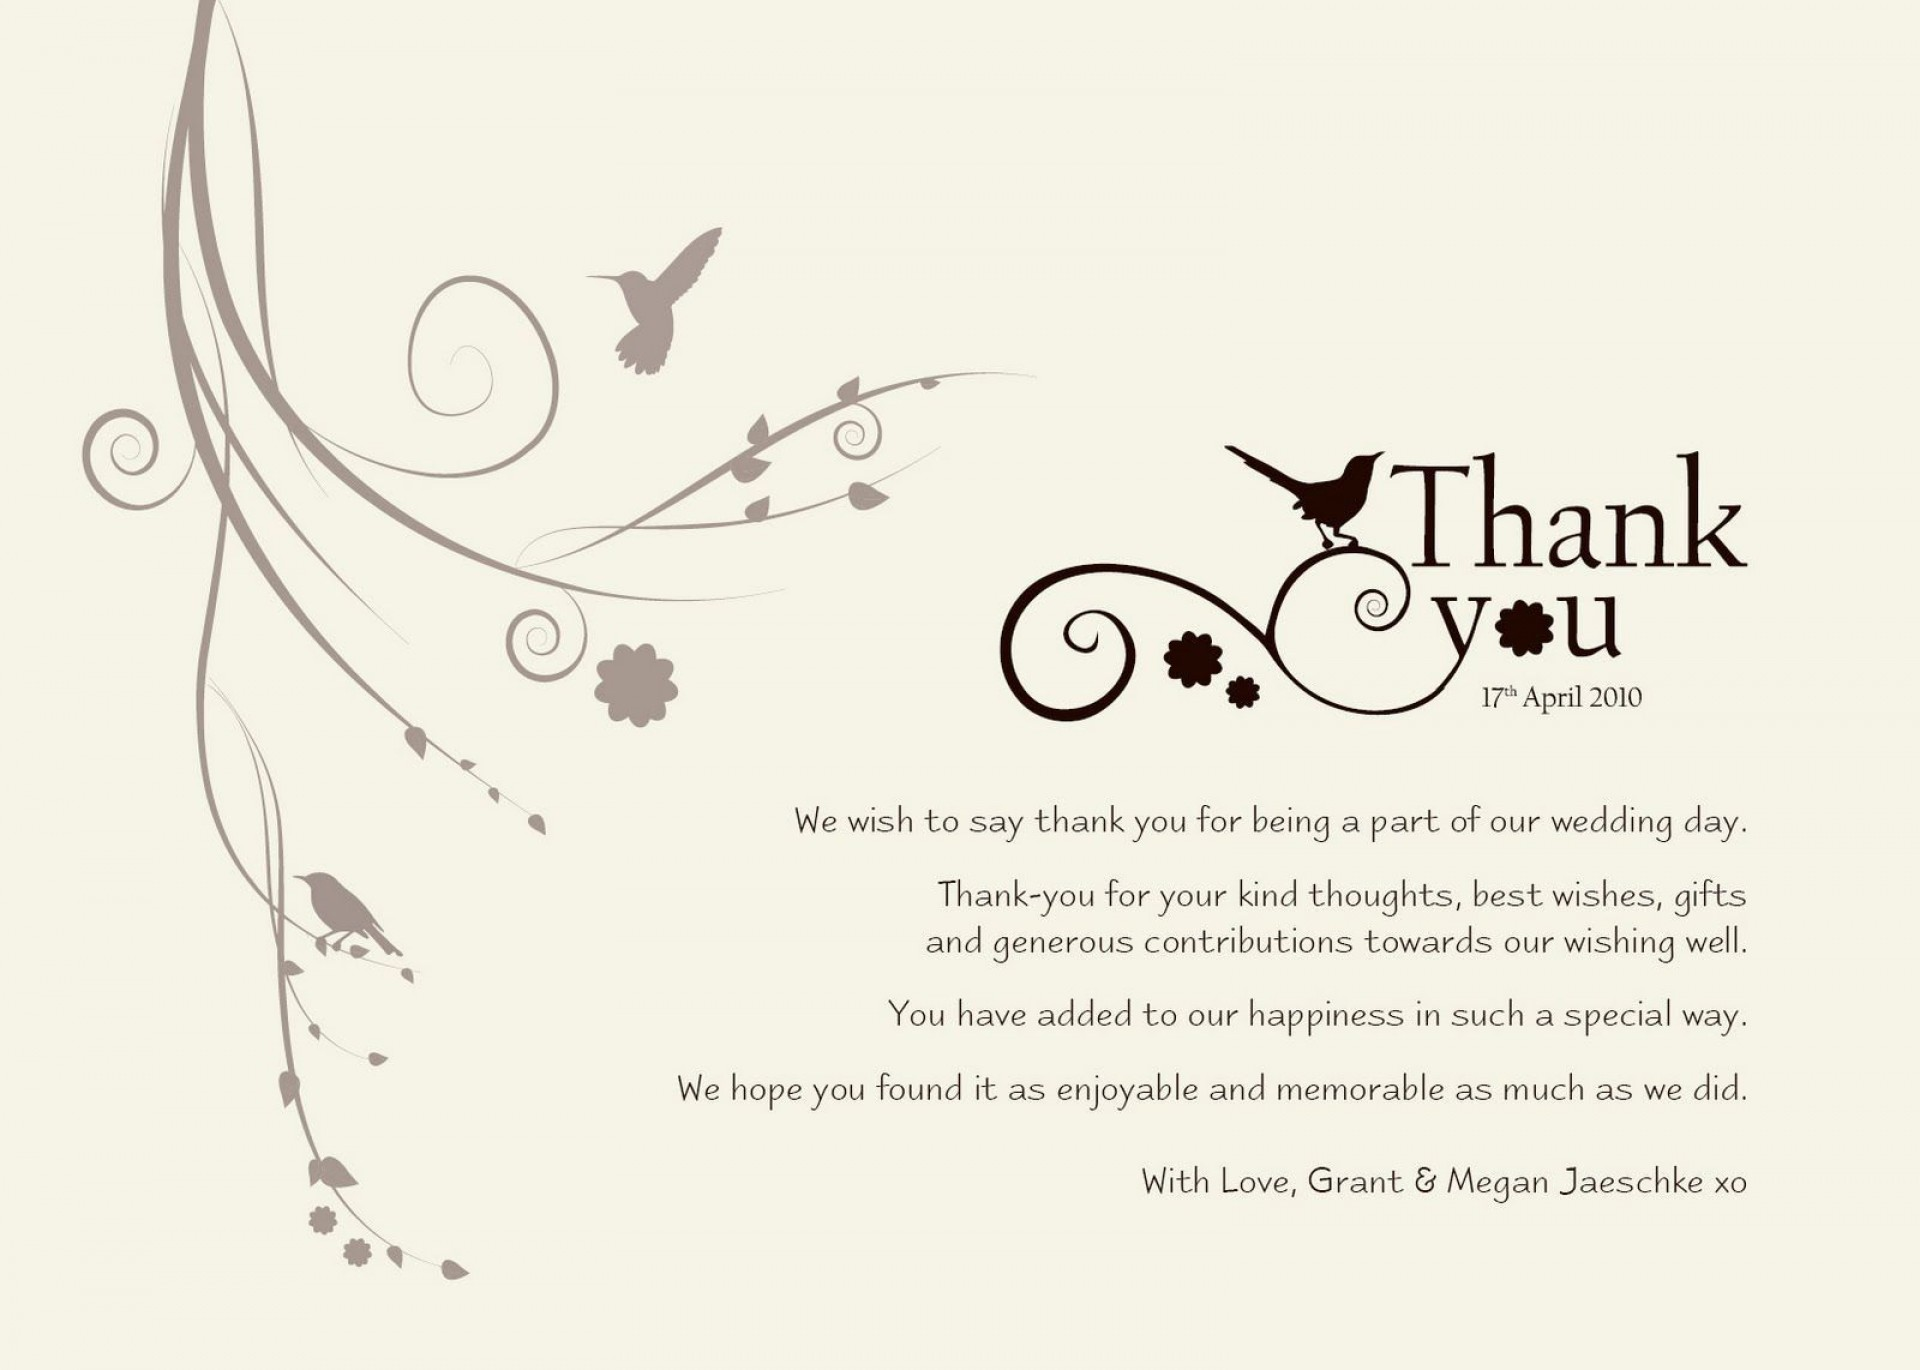 003 Astounding Wedding Thank You Card Template High Definition  Message Sample Free Download Wording For Money1920